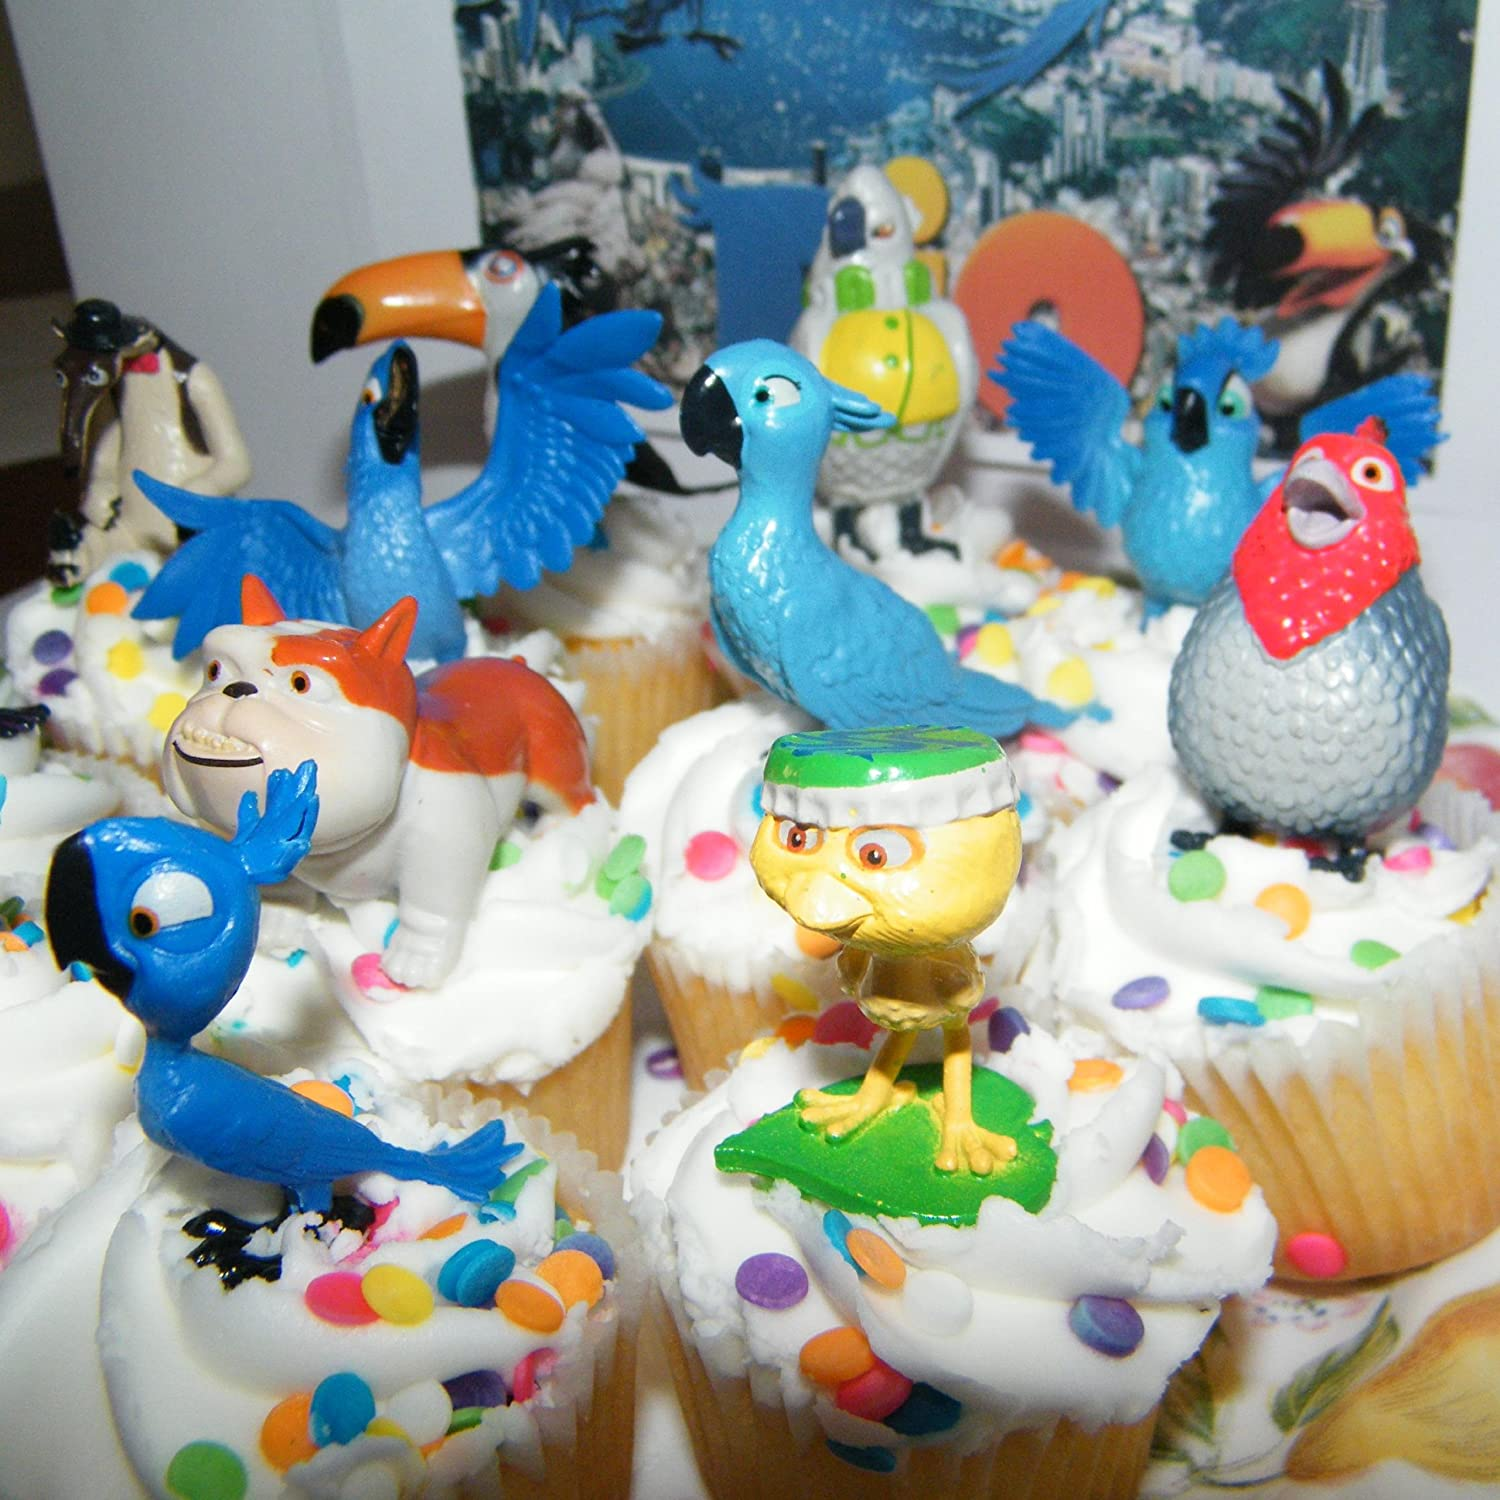 Amazon Rio Movie Set of Bird Figure Cake Toppers Cupcake